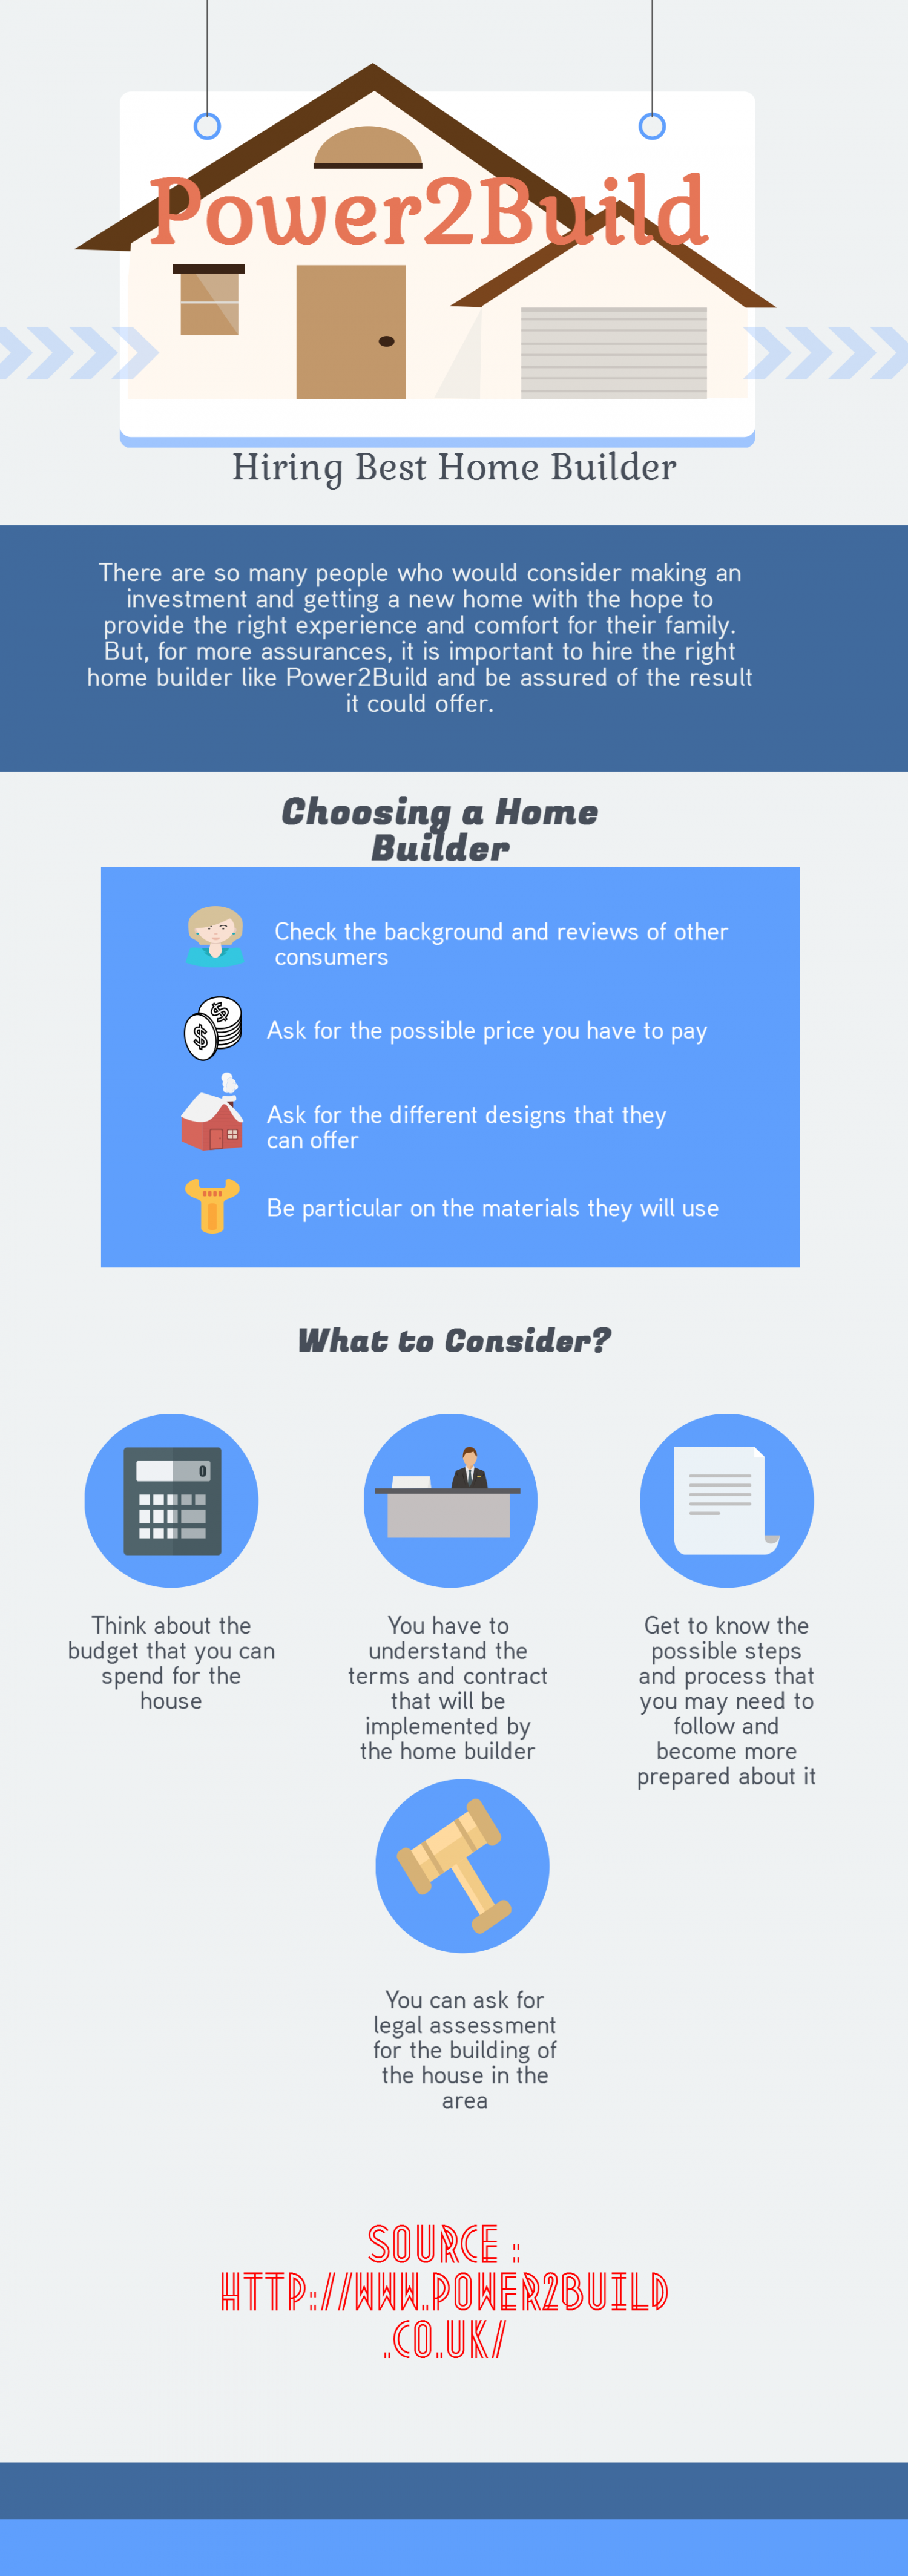 Power2Build Infographic